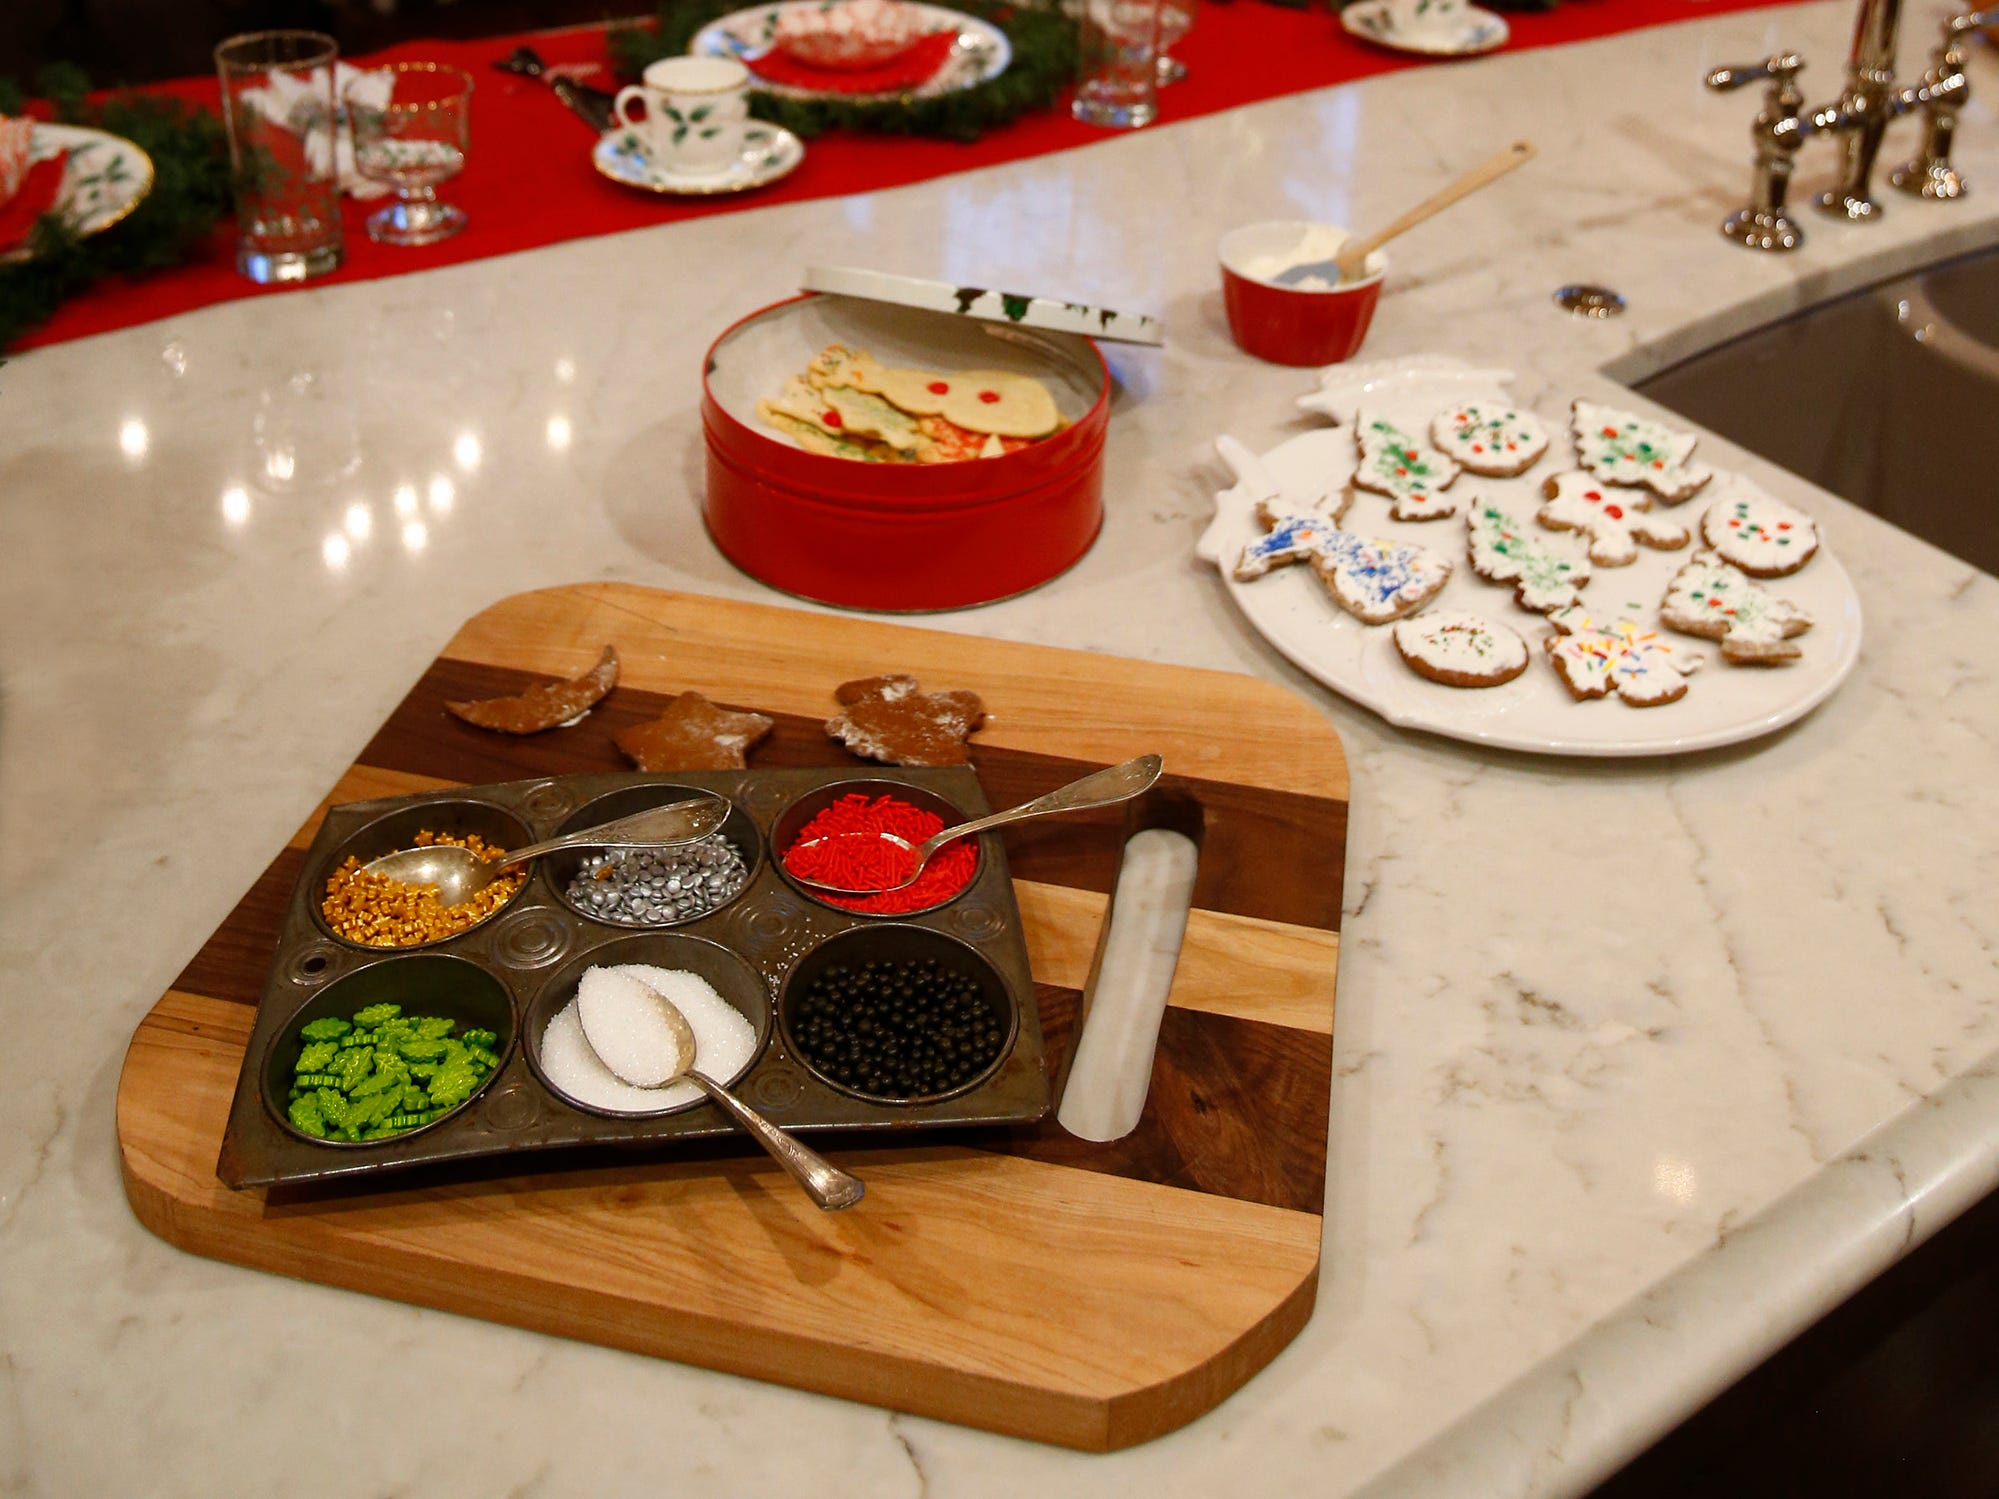 The kitchen is set for decorating cookies for the 26th annual Christmas Fantasy House with 18 rooms decorated by more than 16 area decorators to  benefit the Ronald McDonald House Charities Eastern Wisconsin. The Fantasy house will be open 10 a.m. to 8 p.m. on Nov. 9, and 10 a.m. to 6 p.m. on Nov. 10 and 11. Parking and shuttle to the House is at Ridgewood Baptist Church, 2720 Lilly Road, Brookfield. Tickets are $20 at the door.